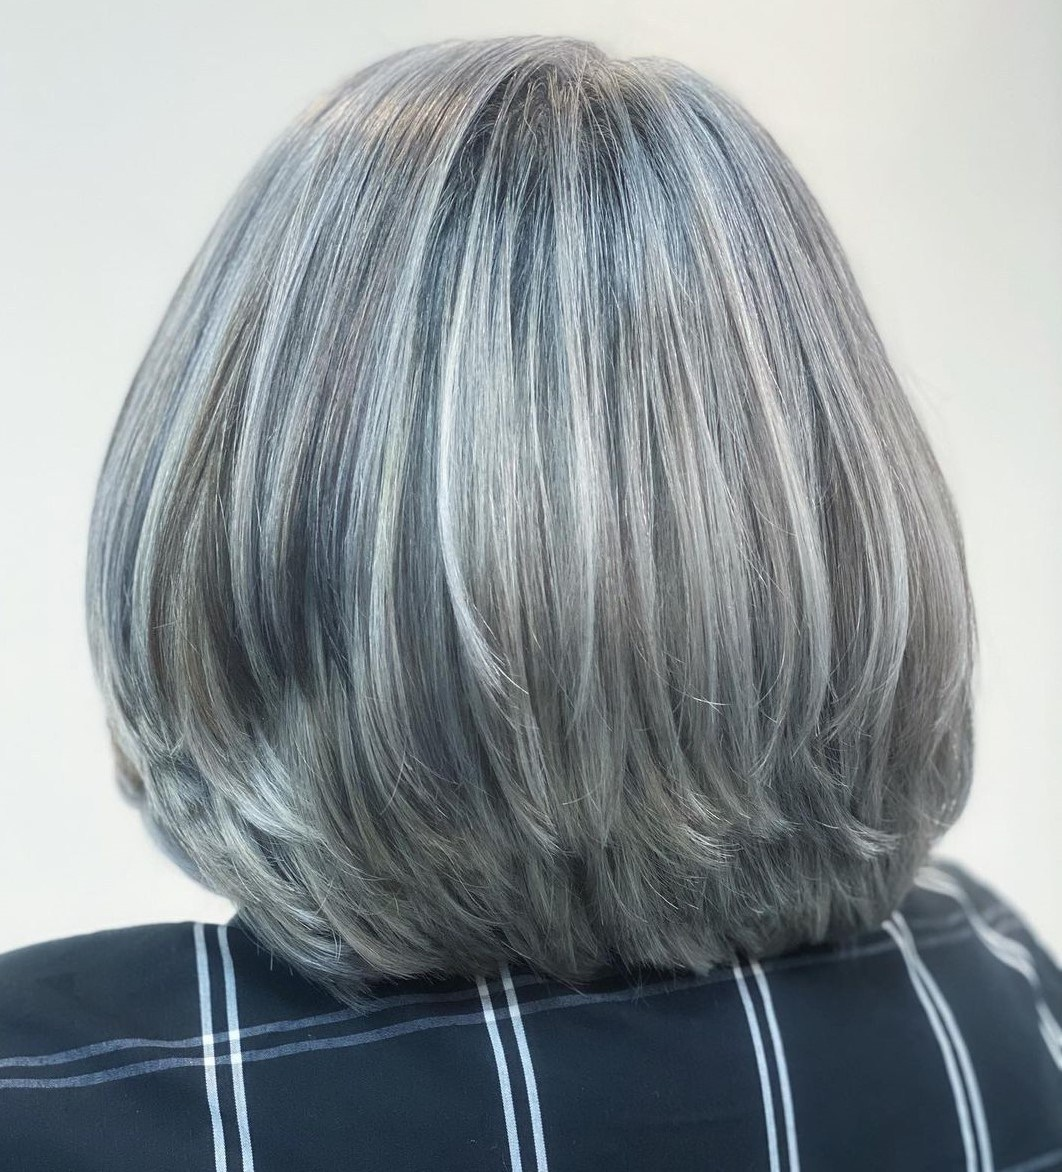 Salt-and-Pepper Balayage Bob